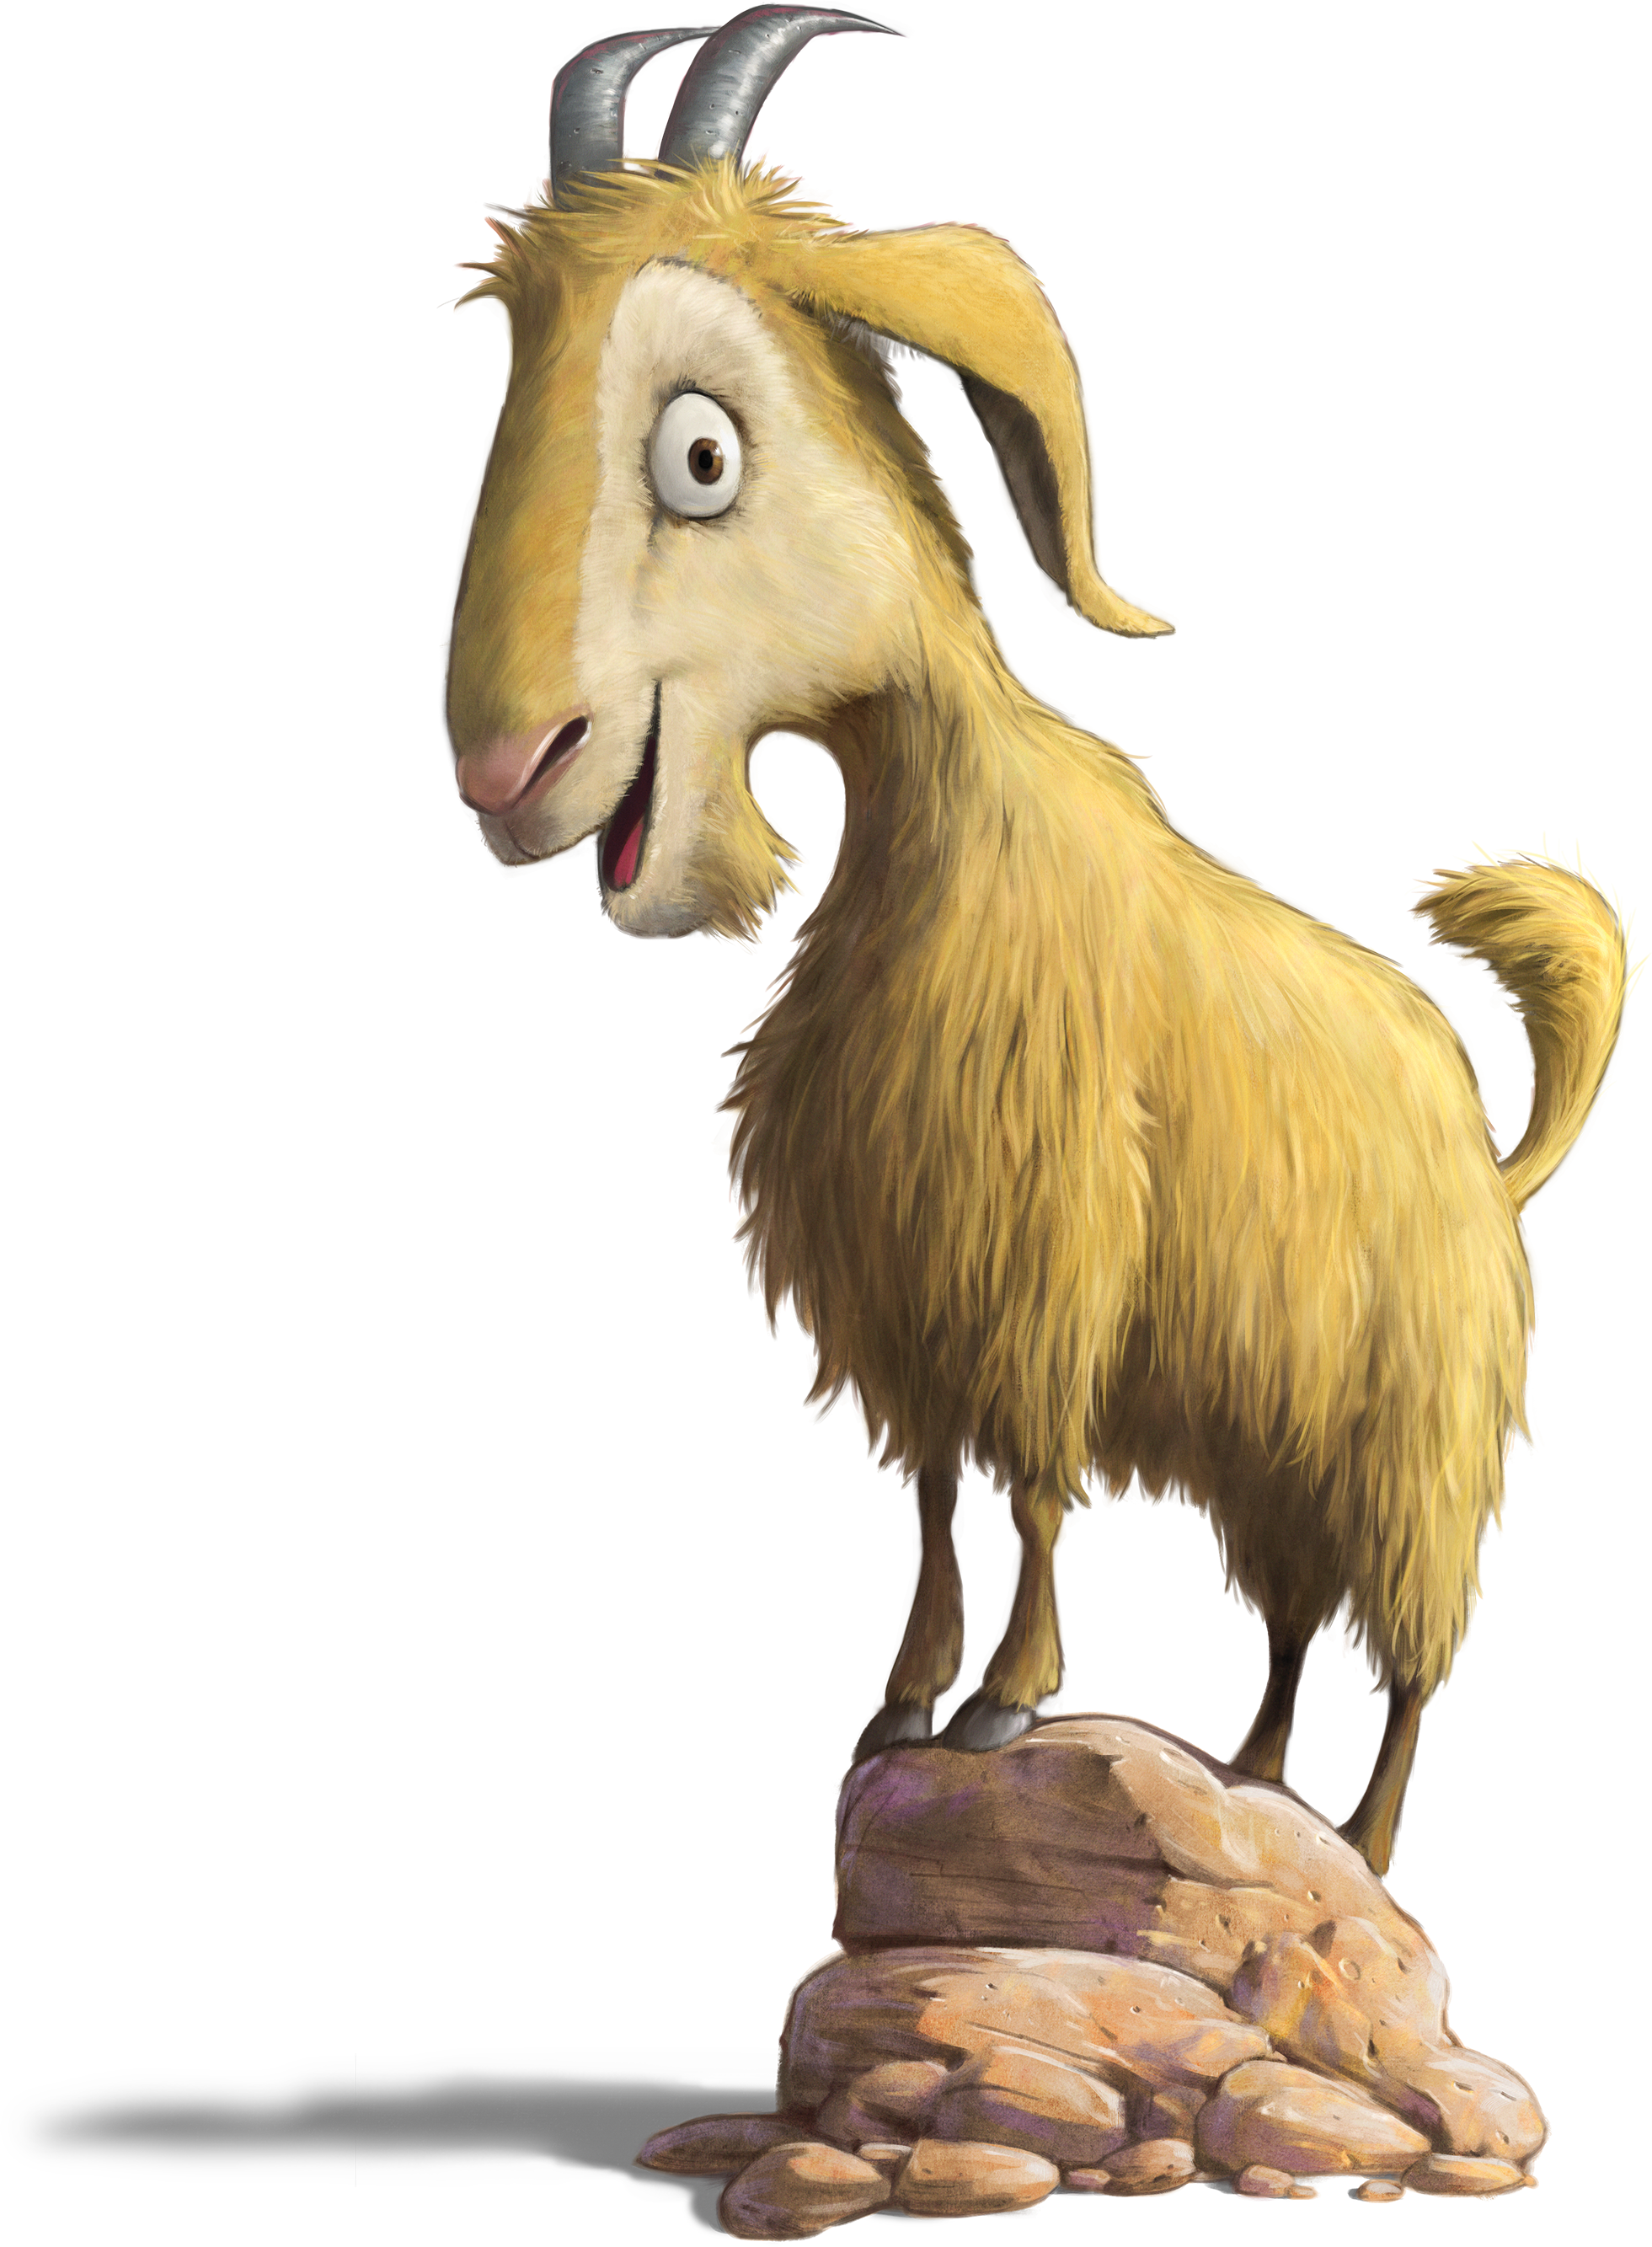 Goat clipart fair animal. Bible times tools clip